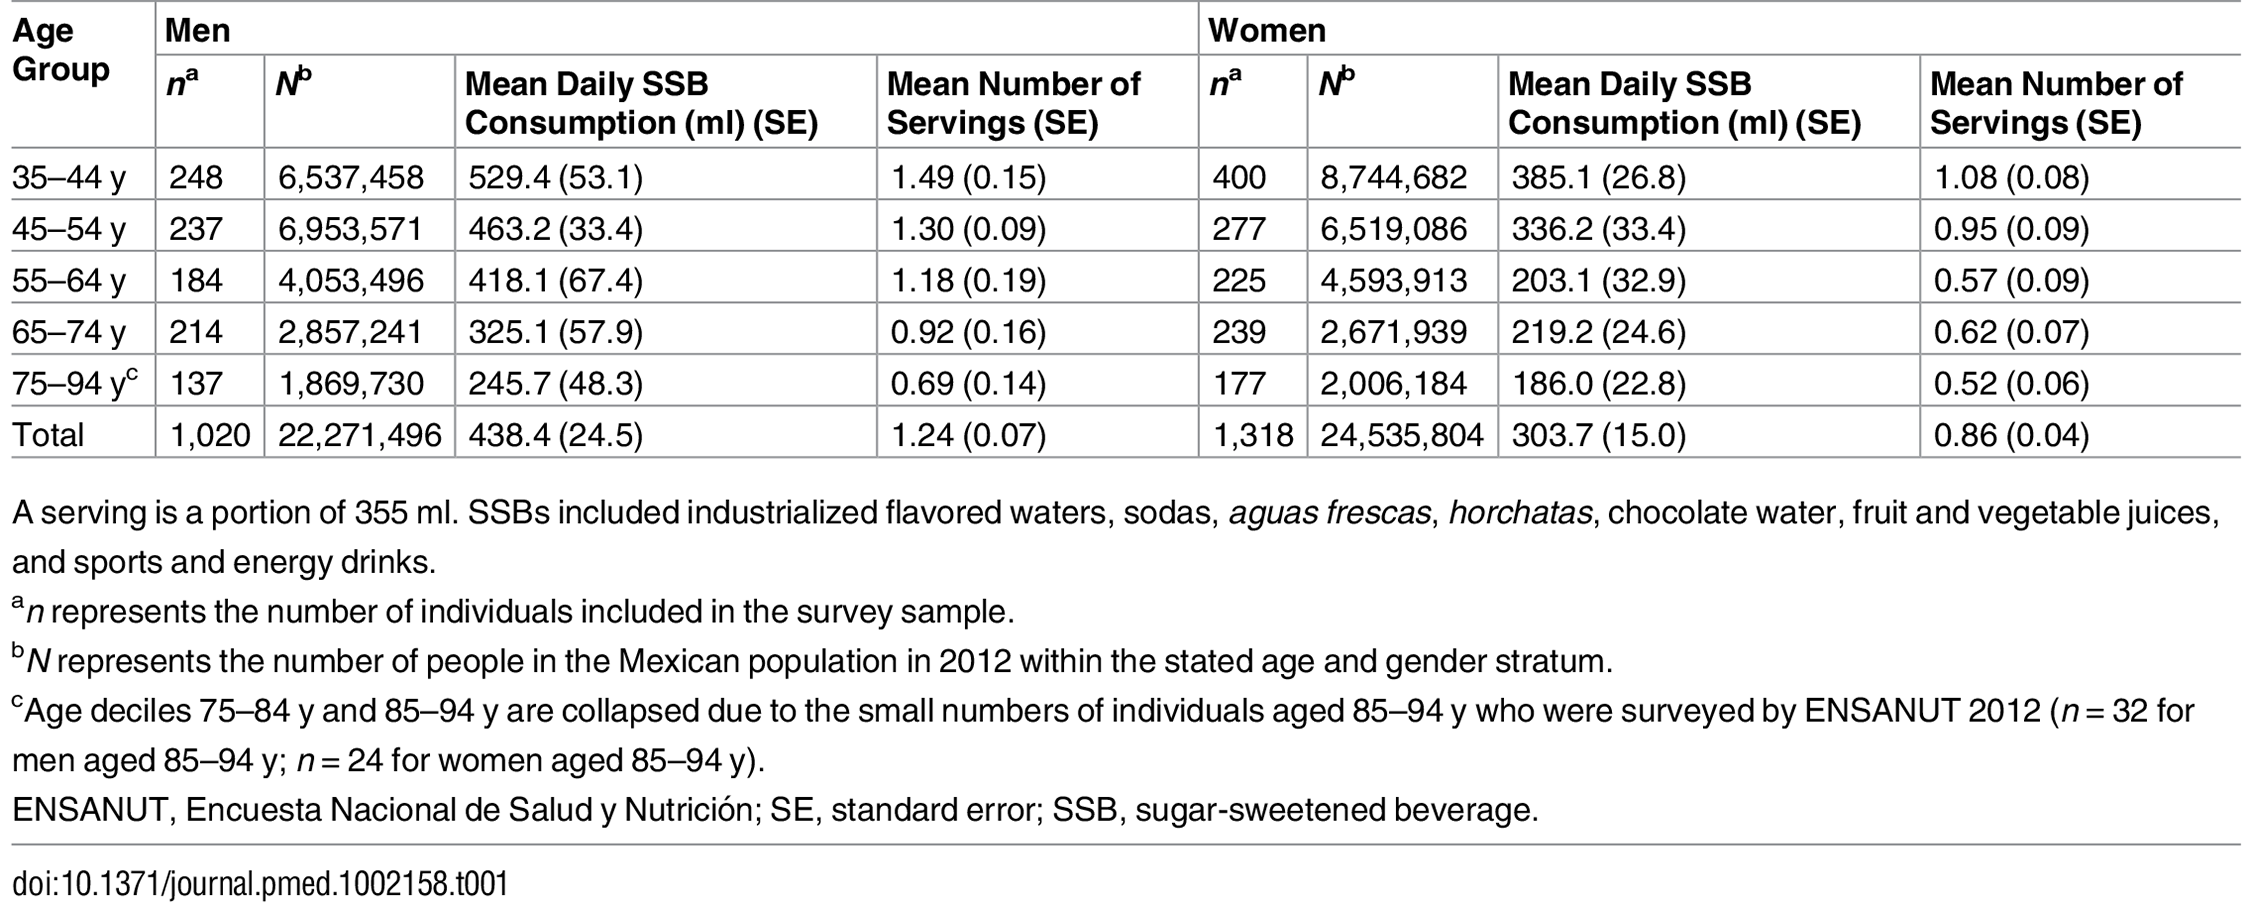 Mean total volume and number of servings of sugar sweetened beverages consumed per person per day among Mexican adults from the 2012 Mexican National Health and Nutrition Survey (ENSANUT).